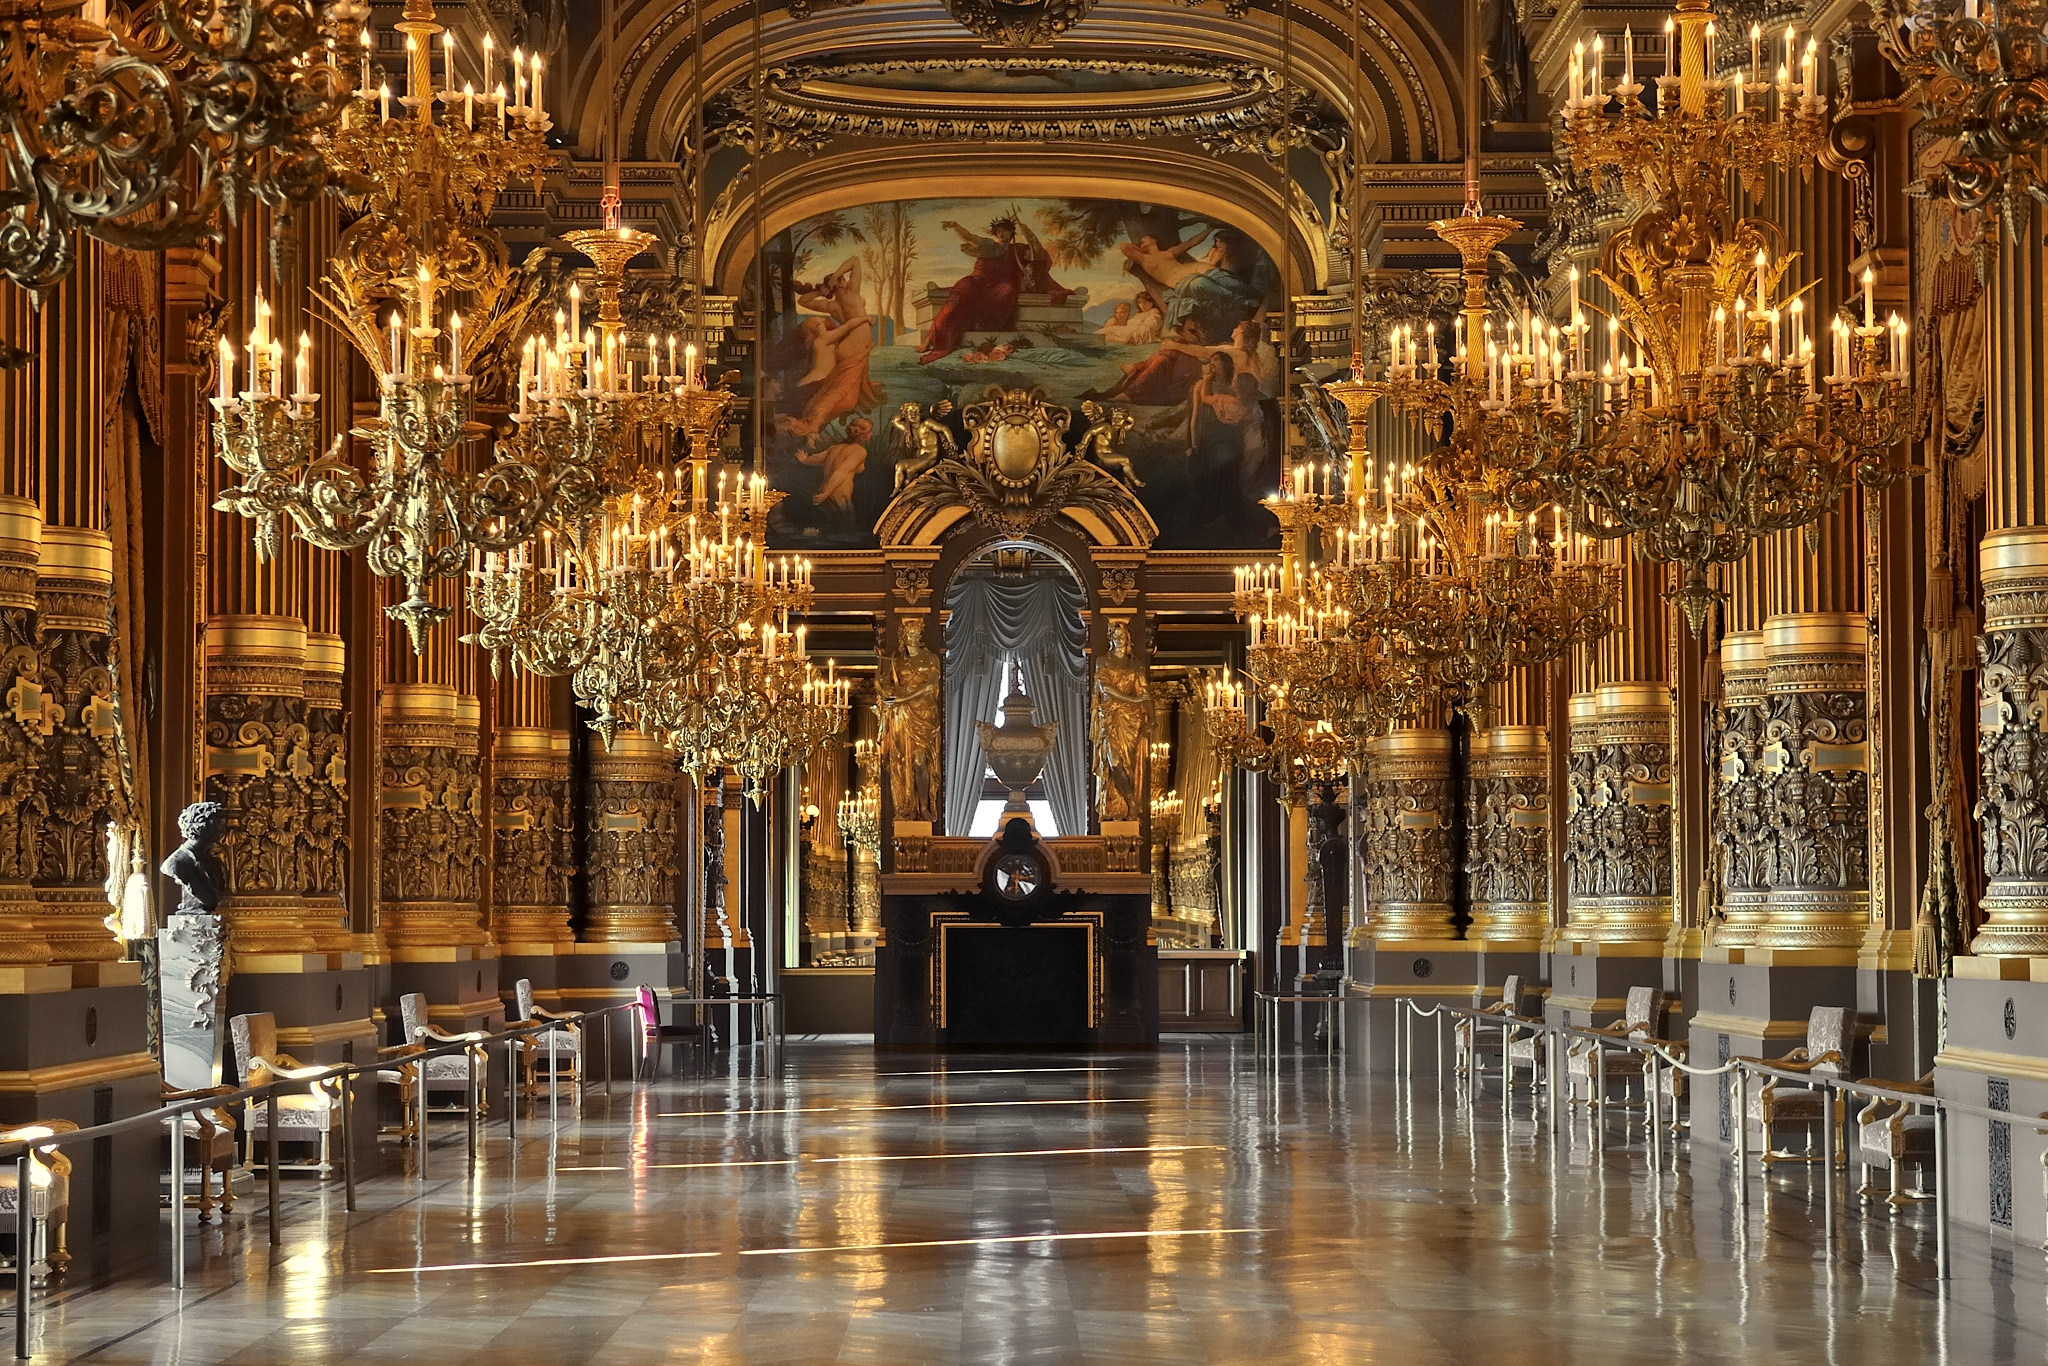 Luxury Travel: 5 Reasons Why Paris Should Be Your Next Destination luxury travel Luxury Travel: 5 Reasons Why Paris Should Be Your Next Destination luxury travel reasons why paris next destination opera garnier